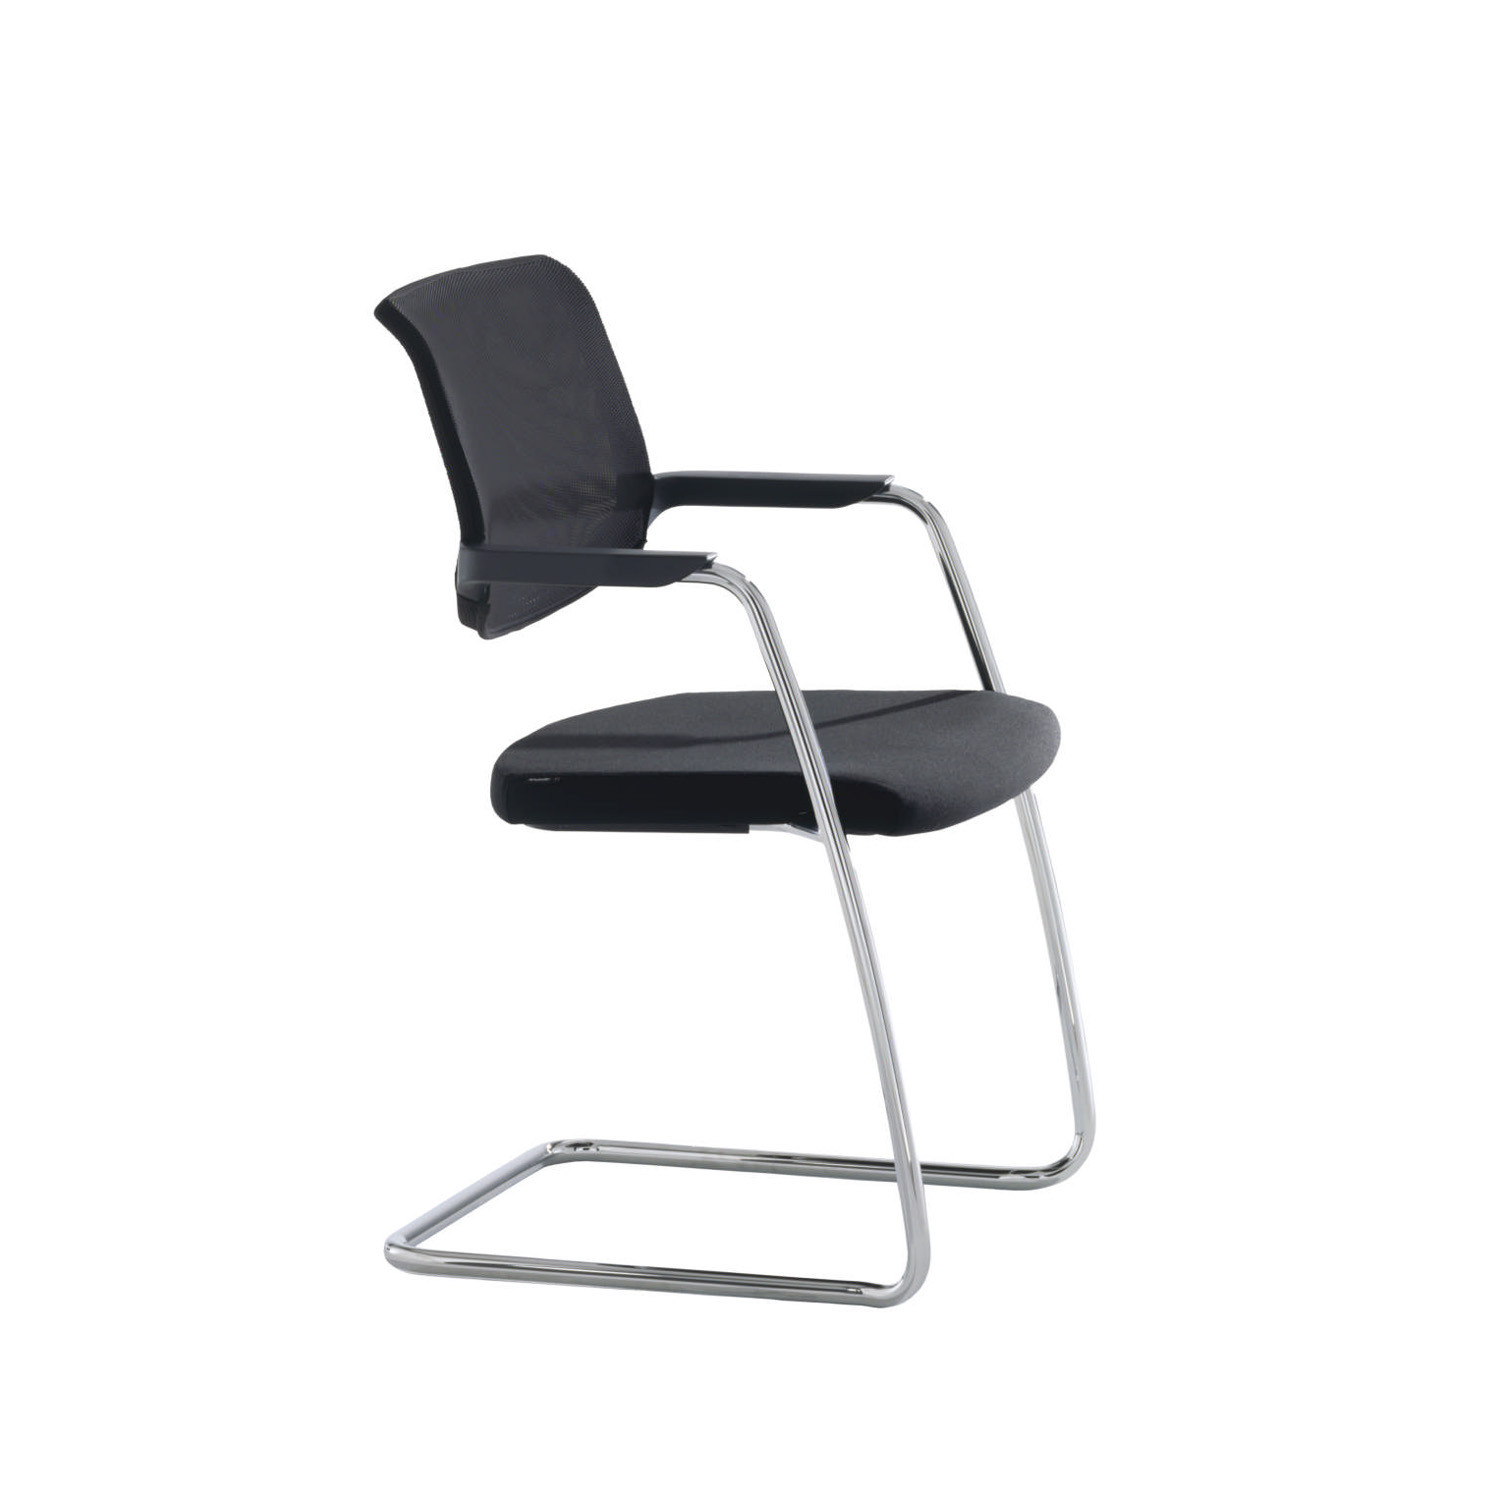 Too Mesh Cantilever Chair